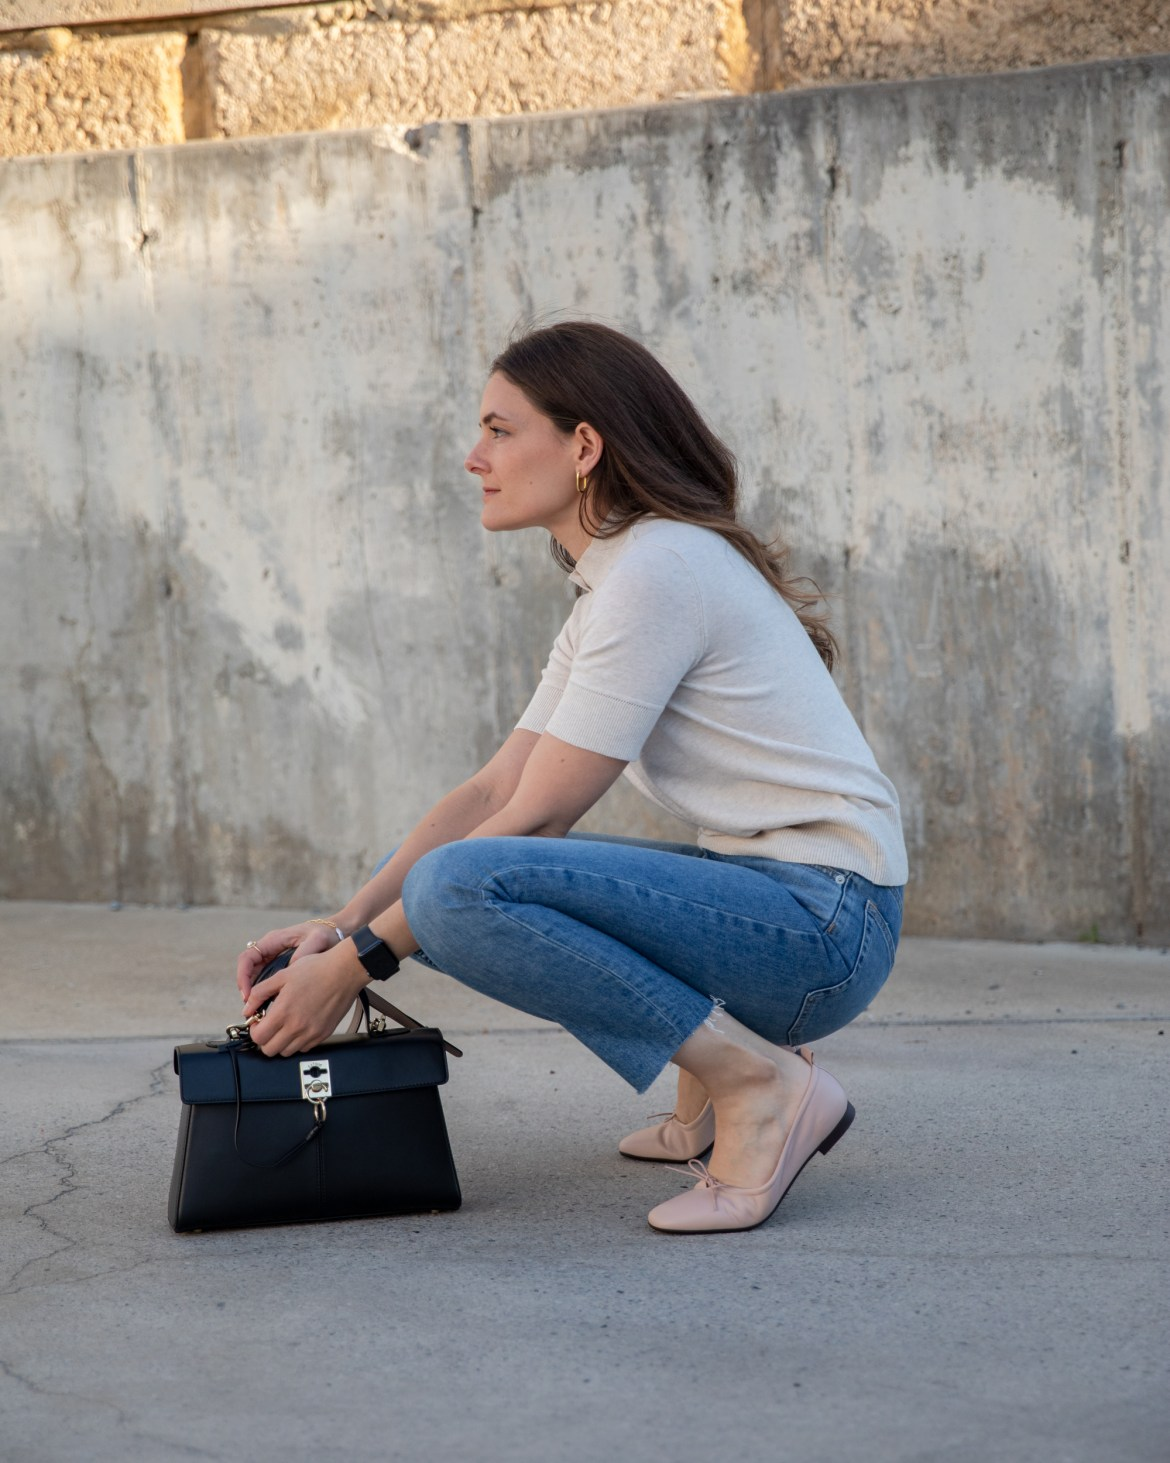 Ballet flats with jeans outfit idea from Everlane with Cafune handbag